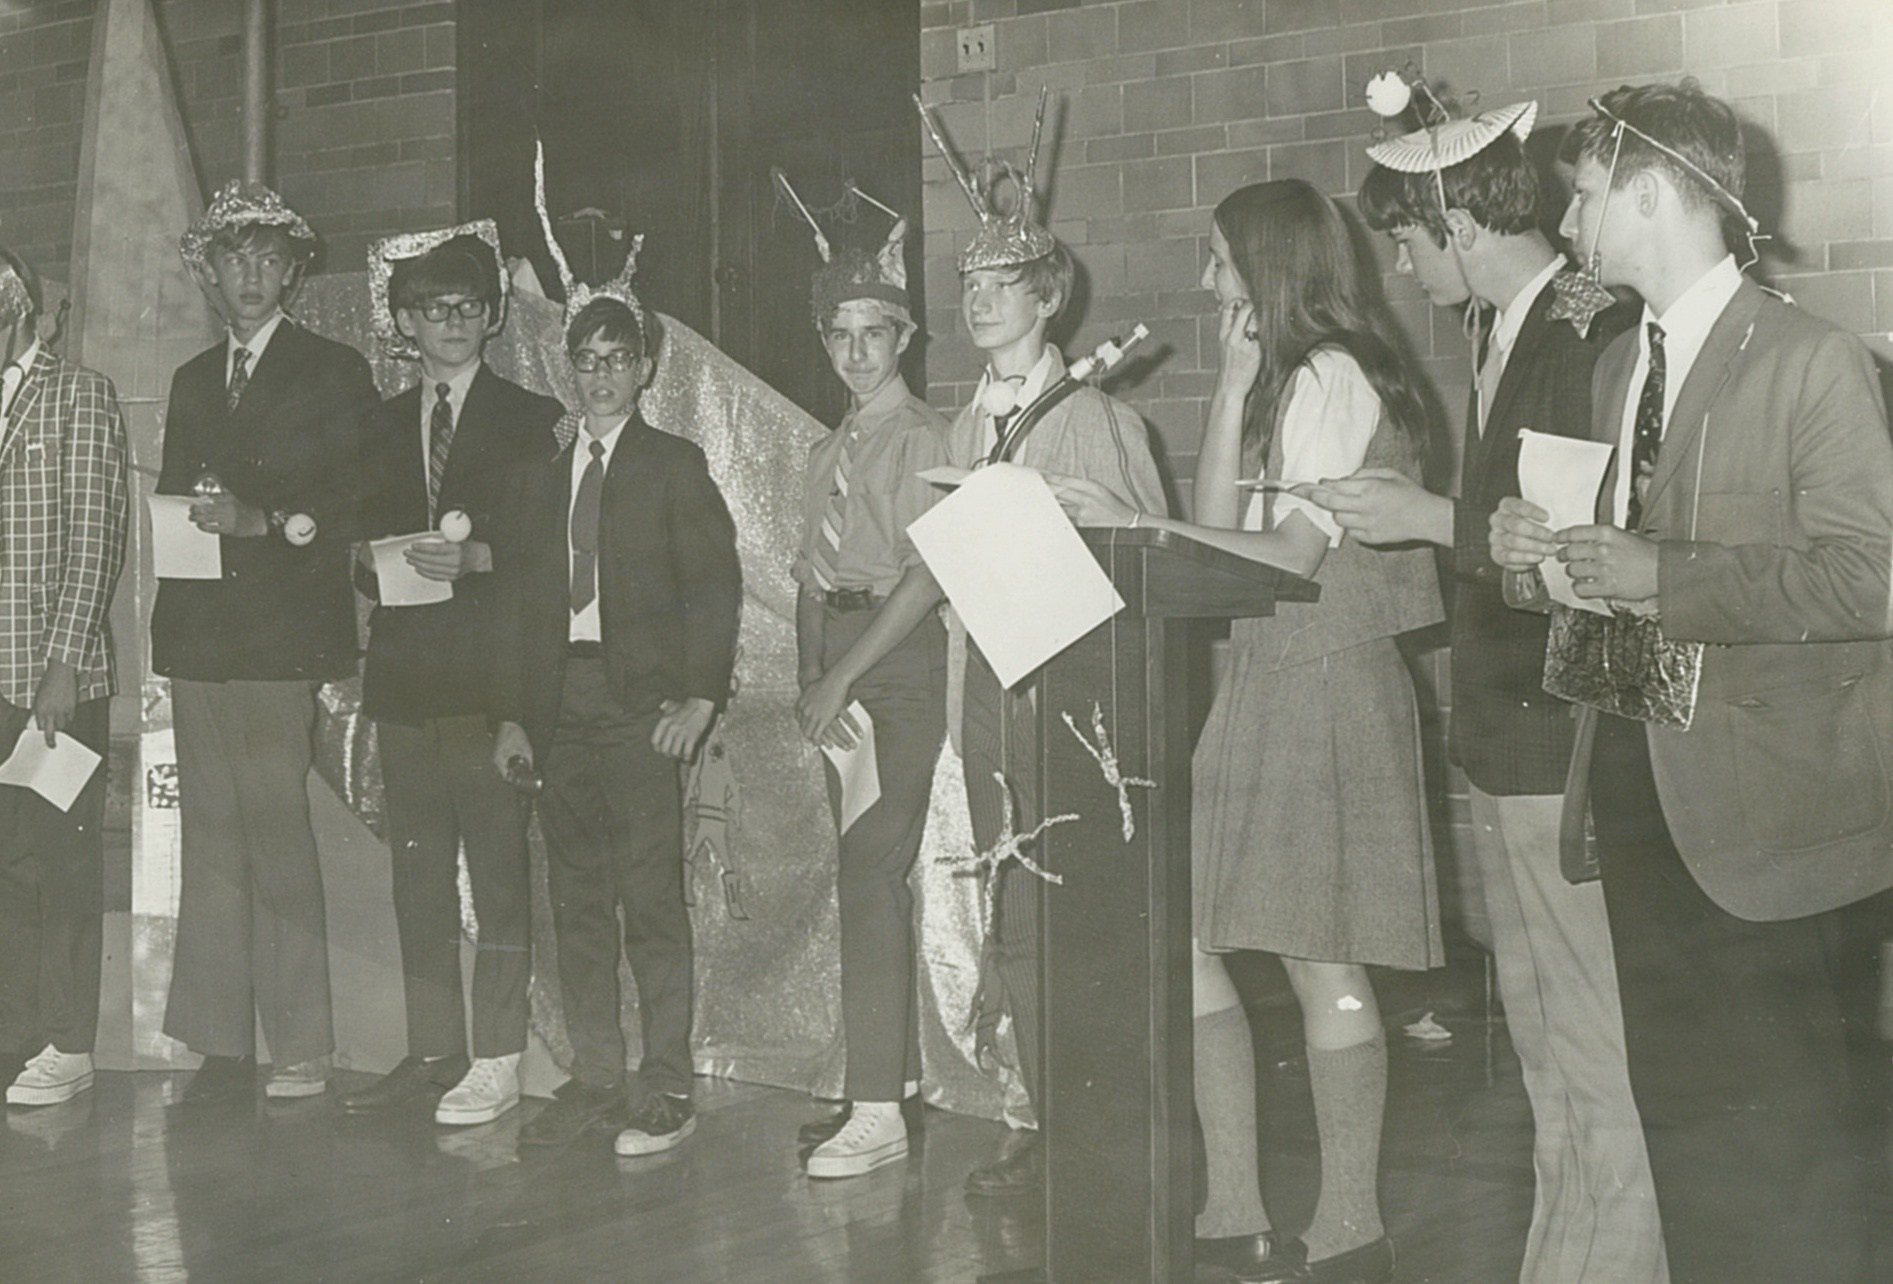 Young men and women at a ceremony for new students in 1970 at OLSH